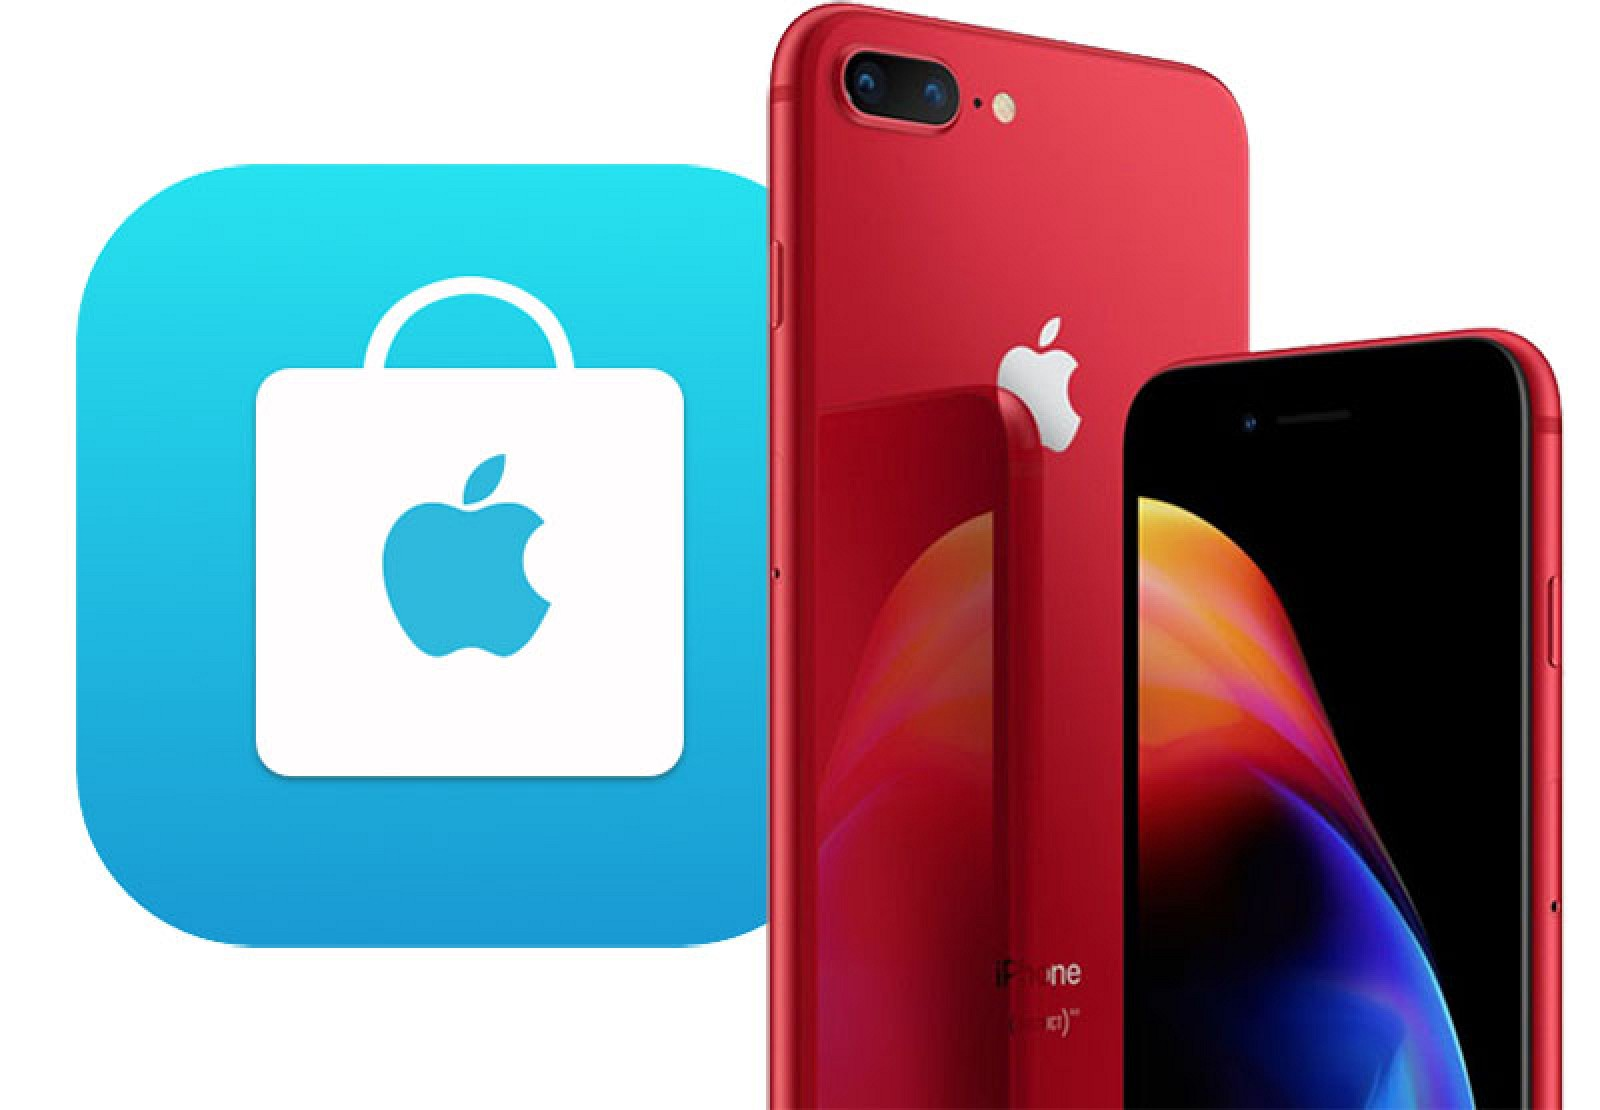 PRODUCT)RED iPhone 8 and iPhone 8 Plus Now Available for In